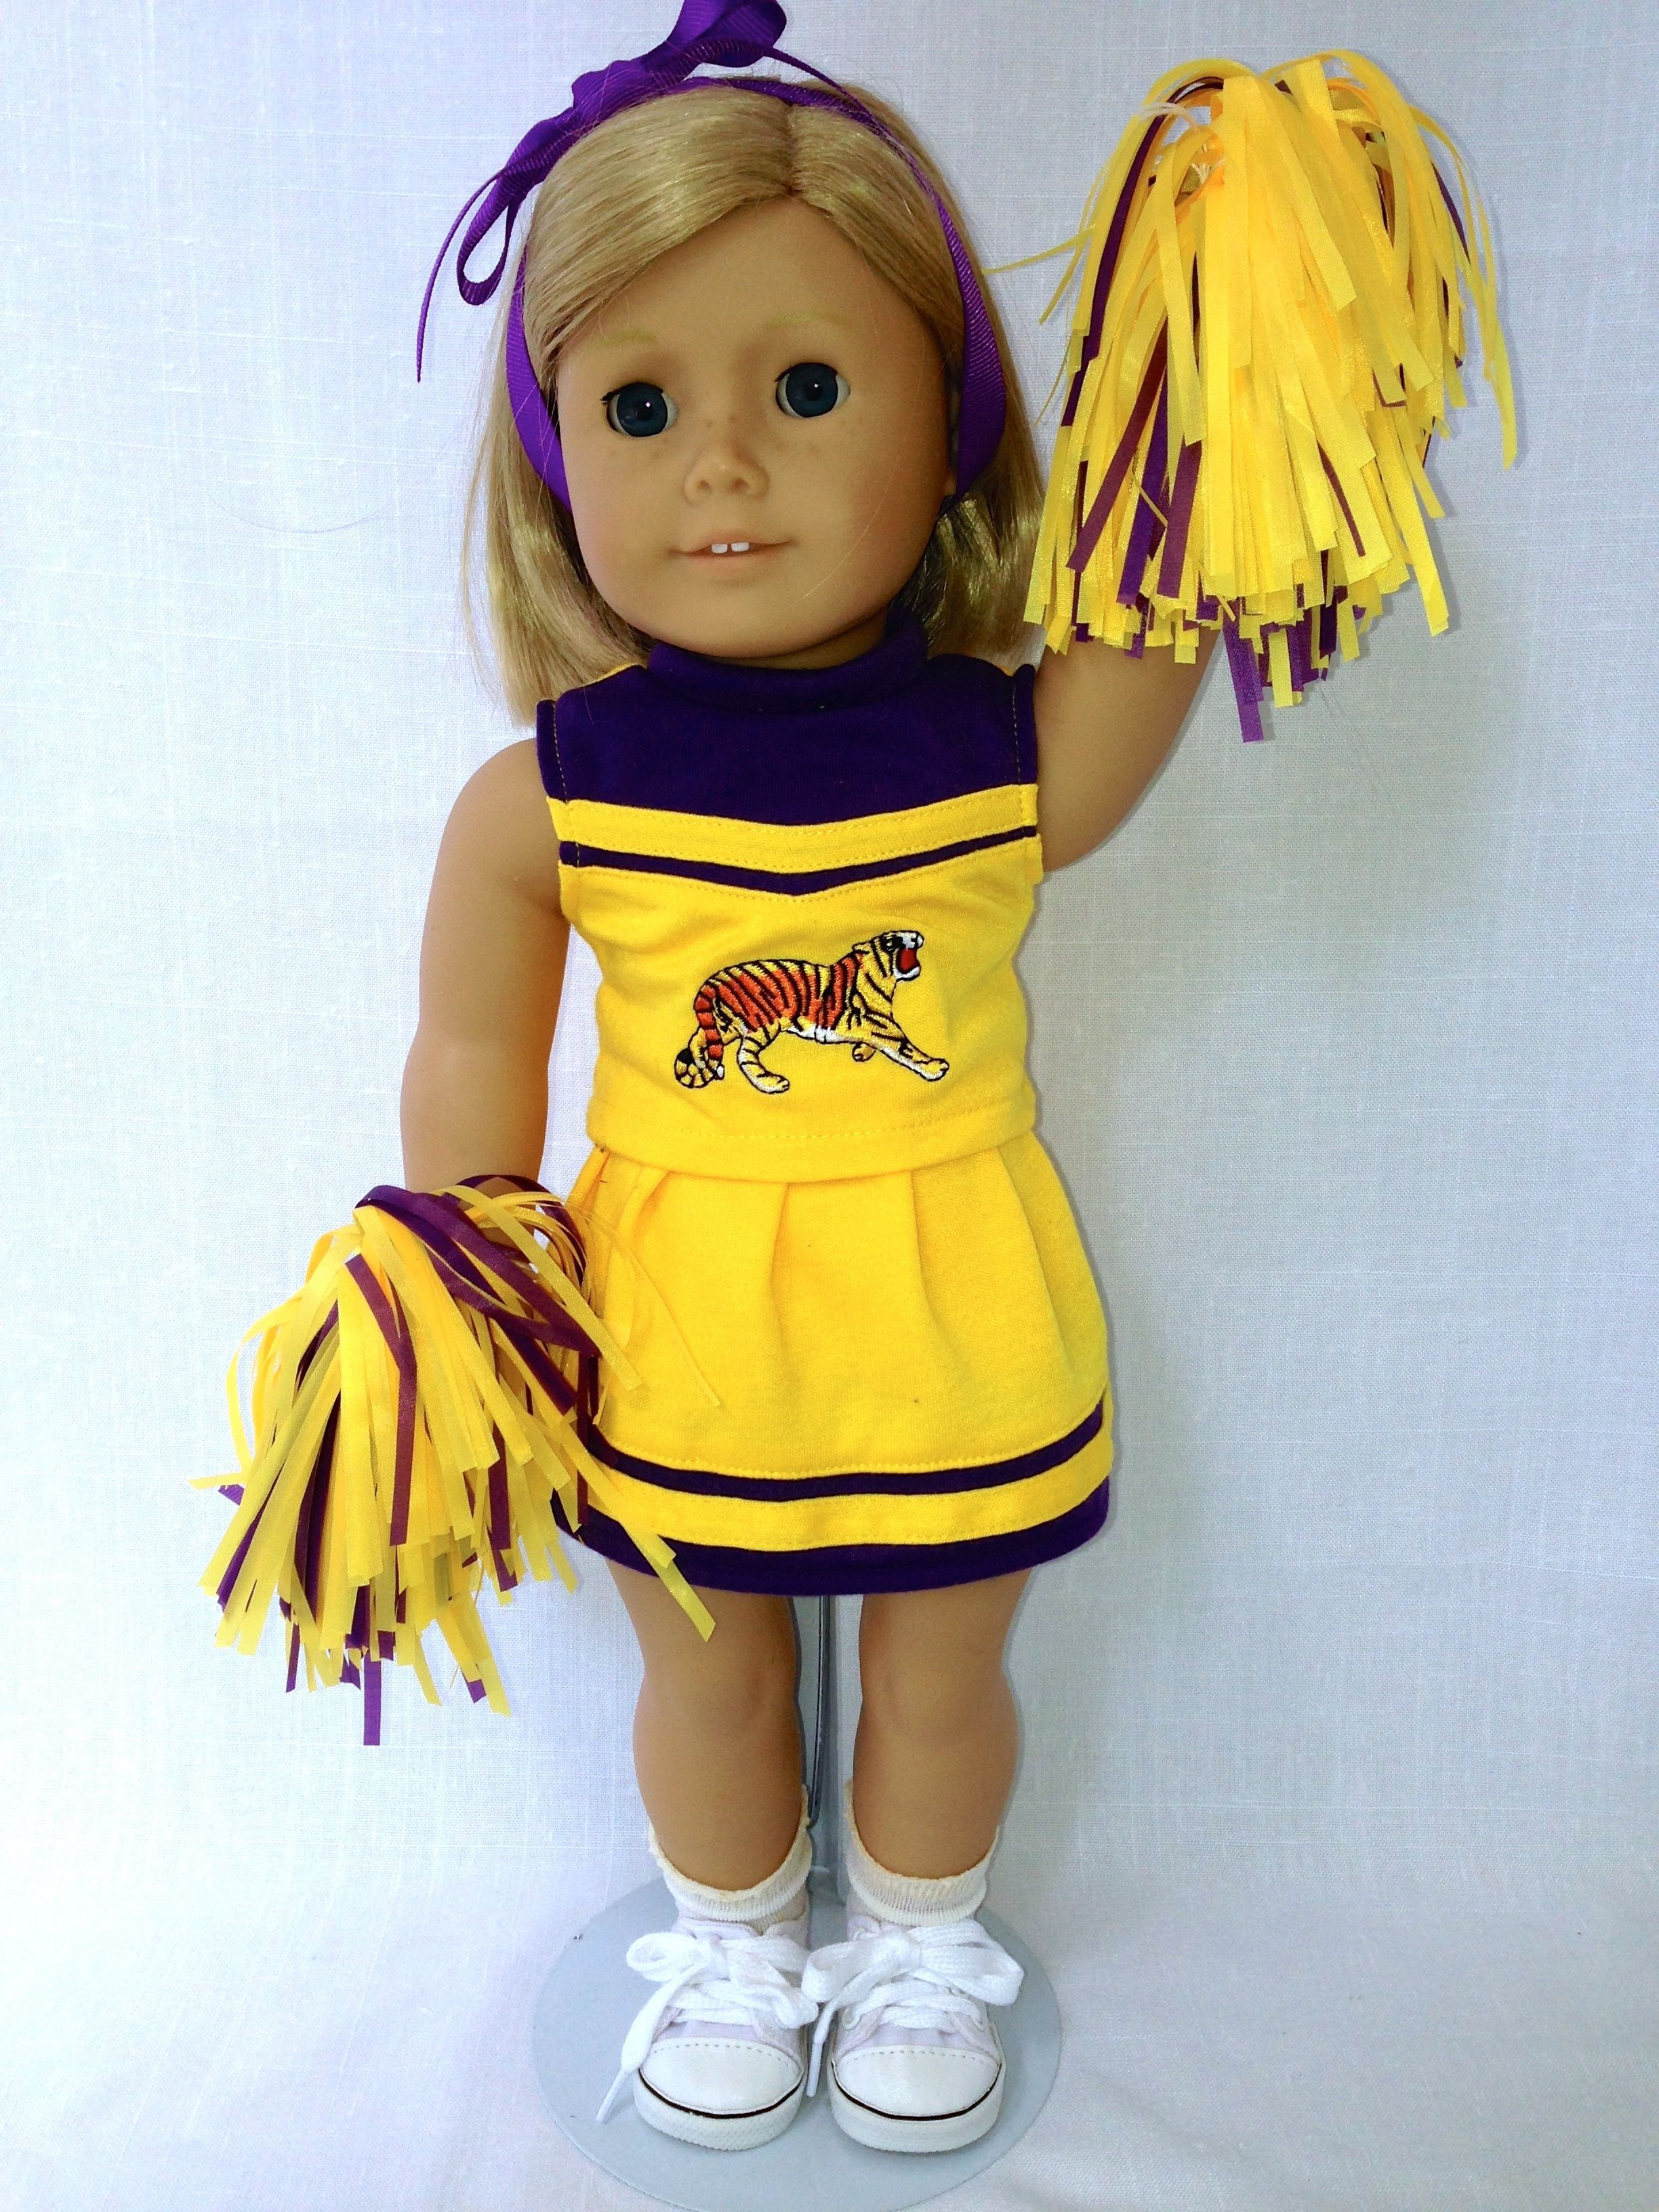 LSU Cheerleader outfit available at www.heritageclothesline.com #18inchcheerleaderclothes LSU Cheerleader outfit available at www.heritageclothesline.com #18inchcheerleaderclothes LSU Cheerleader outfit available at www.heritageclothesline.com #18inchcheerleaderclothes LSU Cheerleader outfit available at www.heritageclothesline.com #18inchcheerleaderclothes